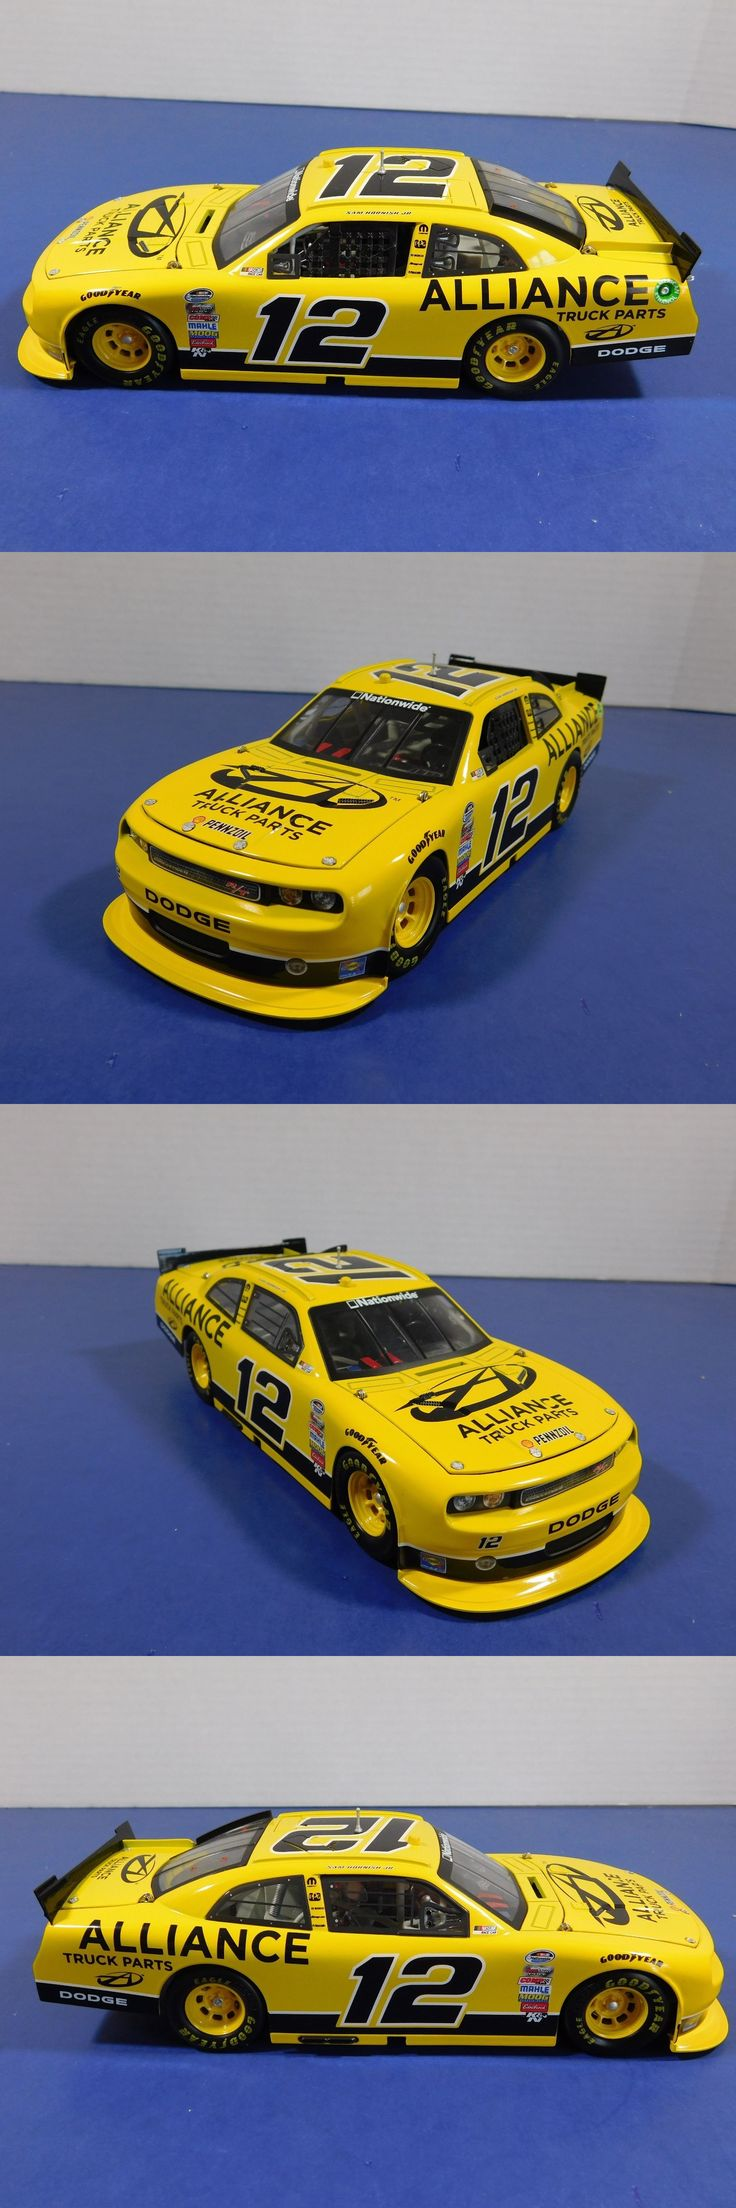 Sport and Touring Cars 180272: Cfs Sam Hornish Jr #12 2011 Dodge Challenger Alliance 1 24 Die Cast Car W Box -> BUY IT NOW ONLY: $164.95 on eBay!